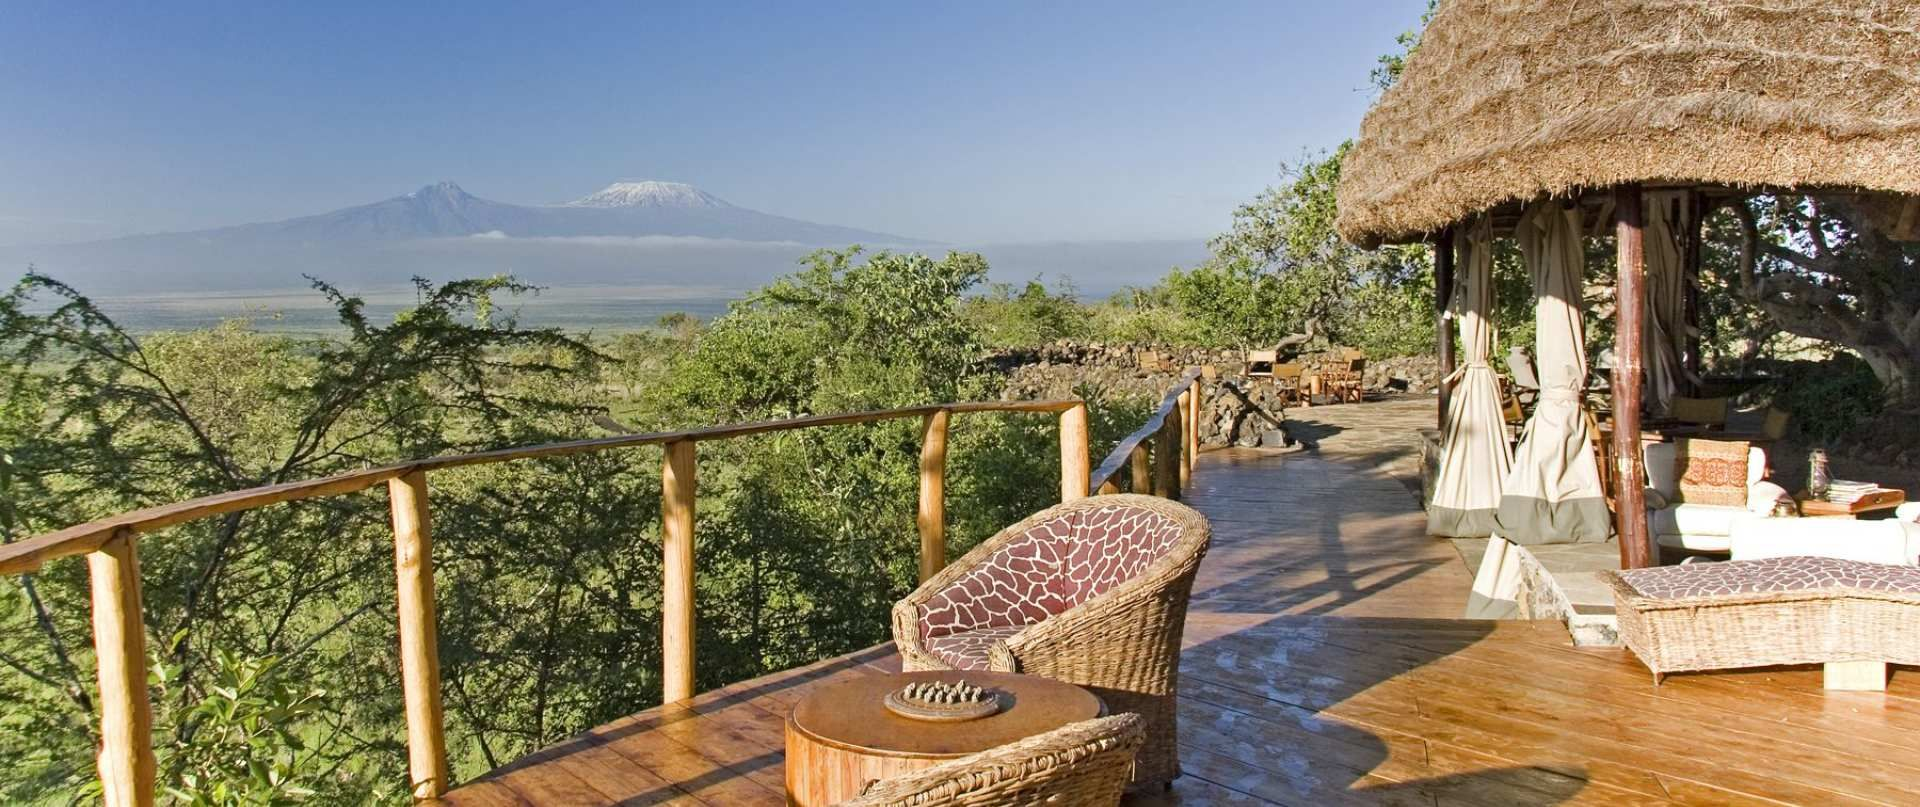 What Is An Eco Lodge The Top 20 Eco Resorts Eco Hotels Safari